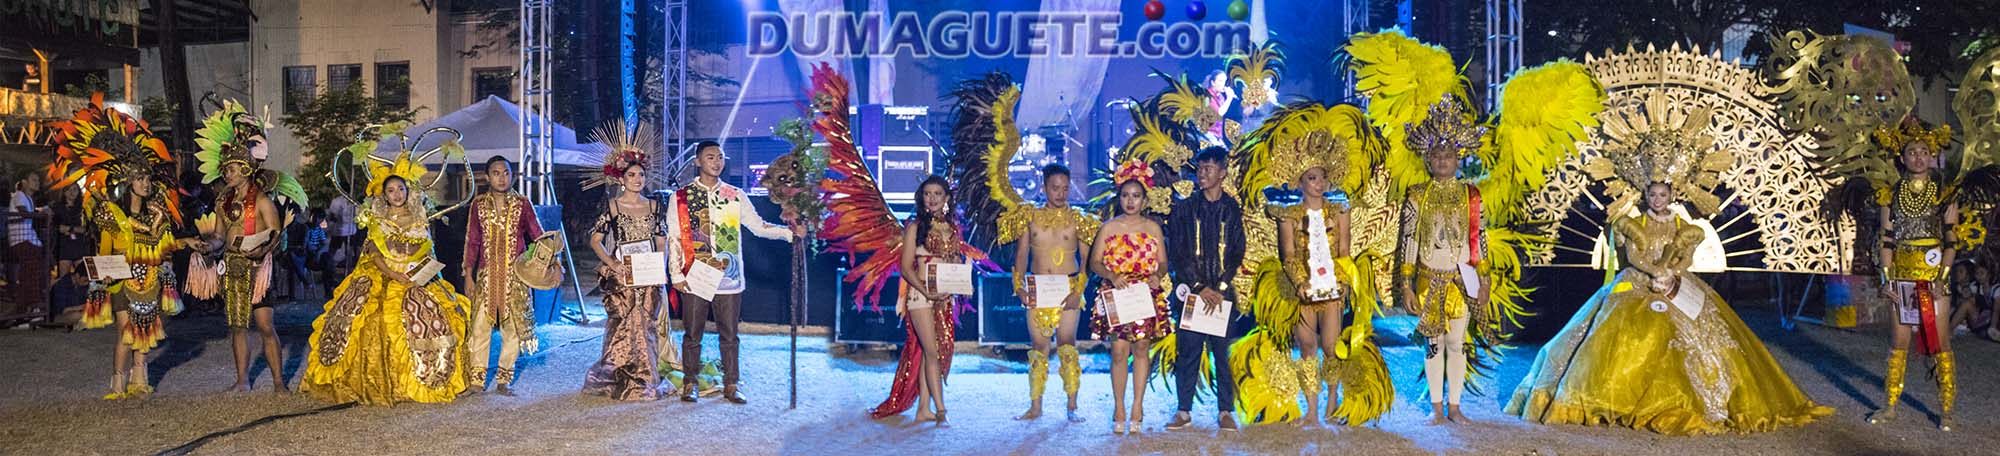 Hibalag Festival 2019 - Festival King and Queen 2019